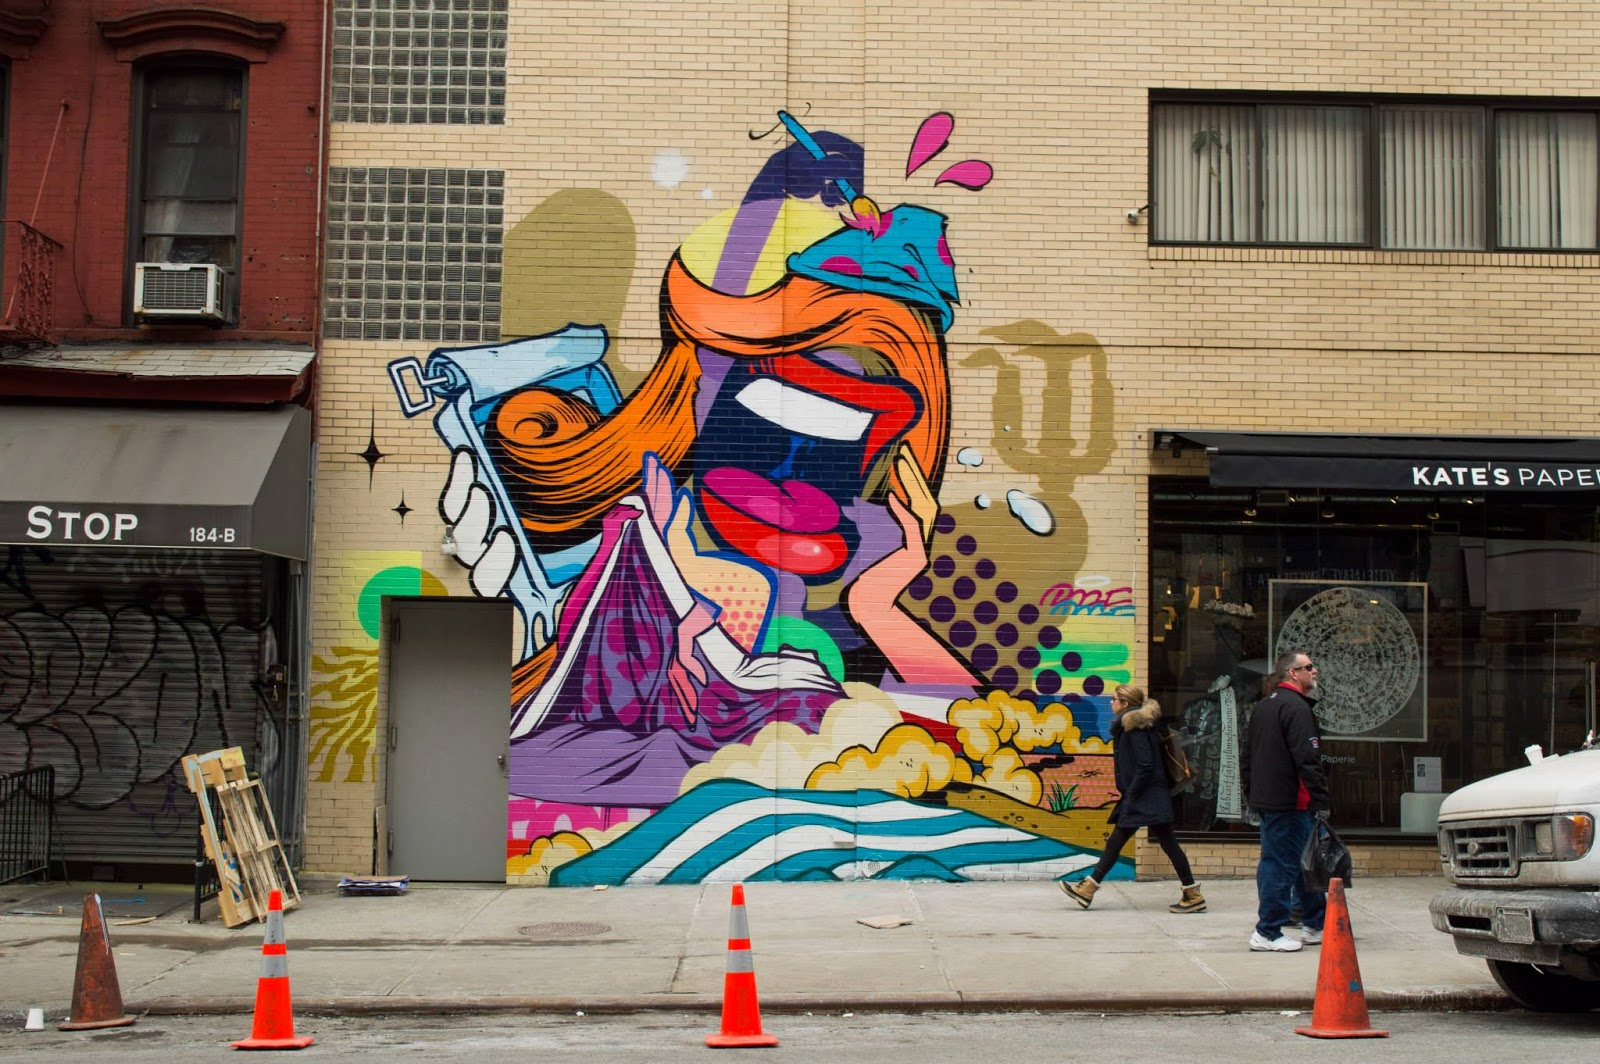 New Street Art Mural By Pose in New York City For The Lisa Project. 1